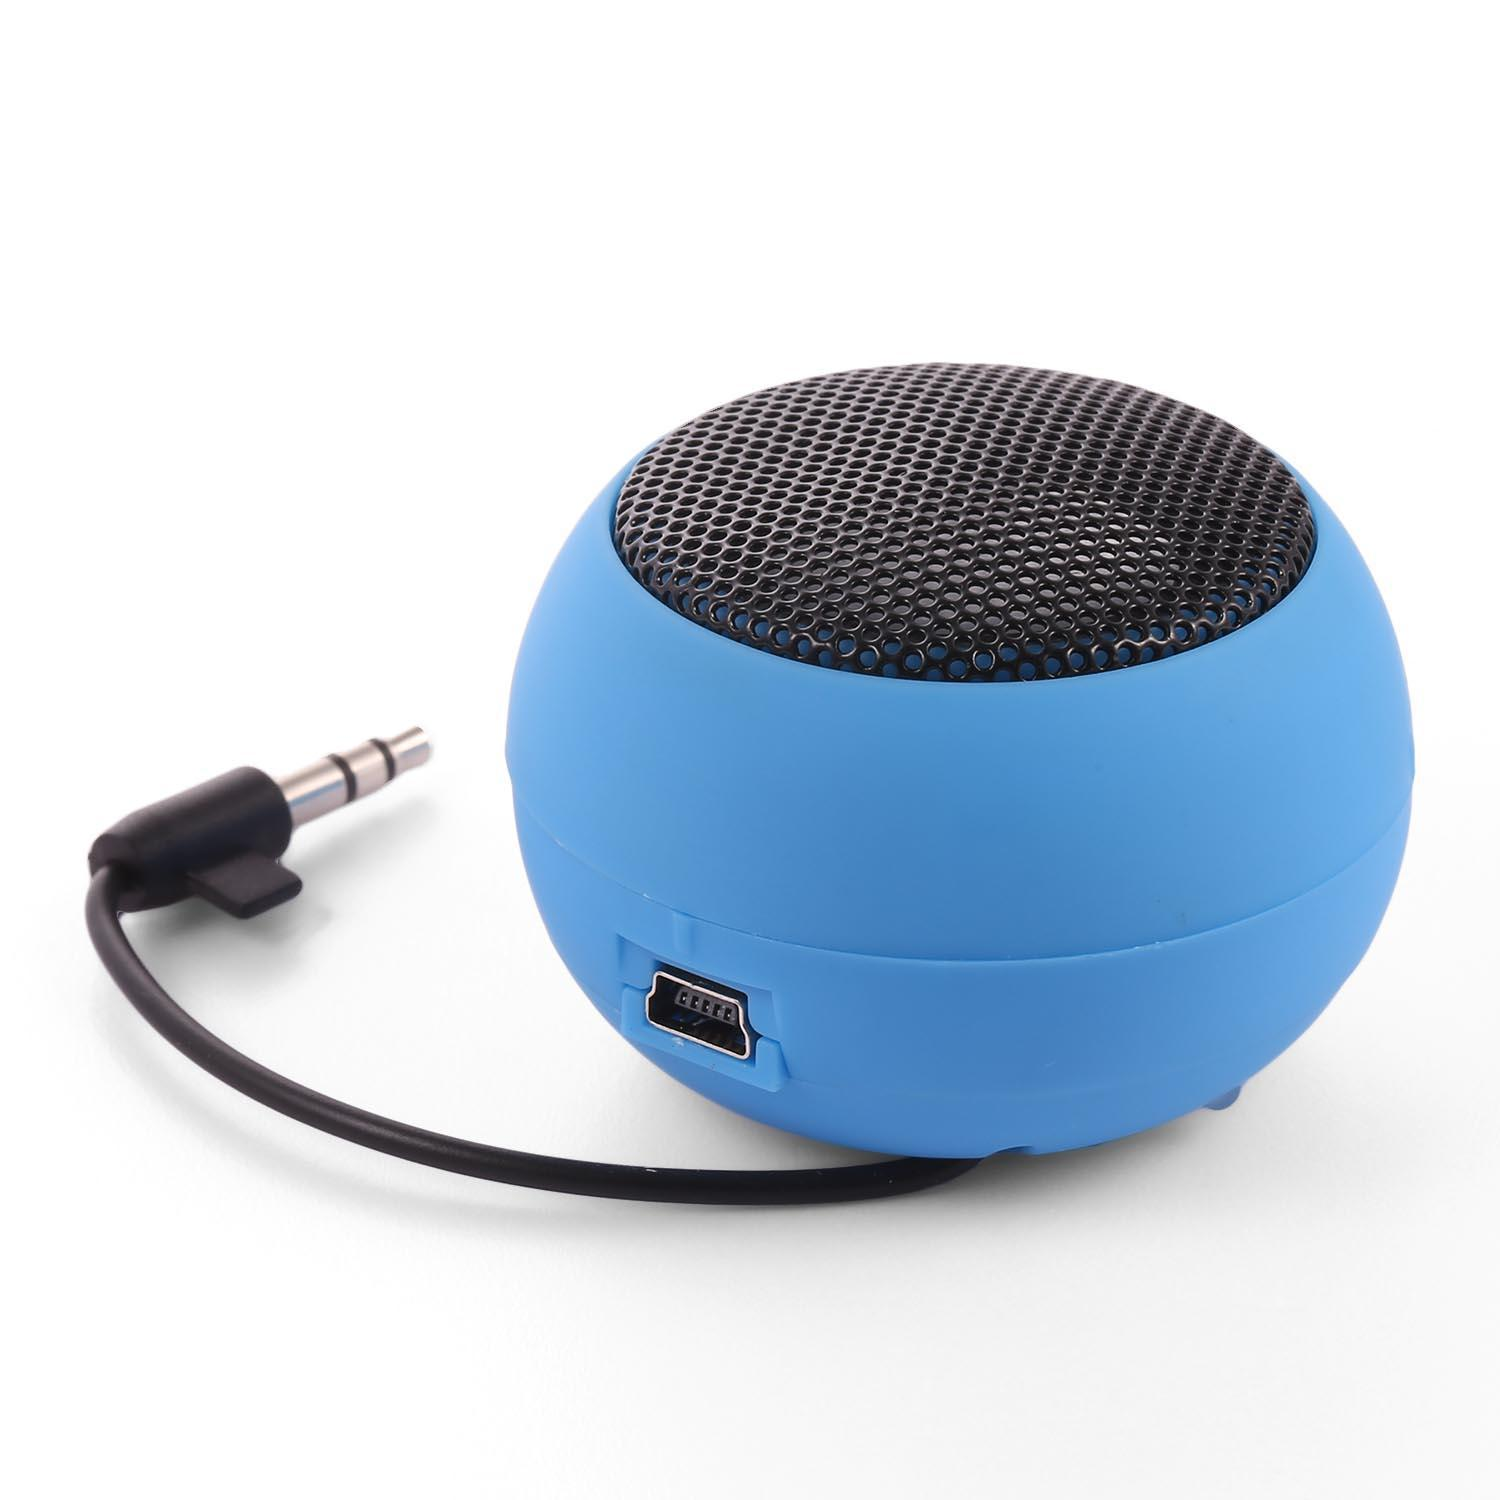 New Smartphone Tablet Laptop Super Portable Mini Speaker HITC